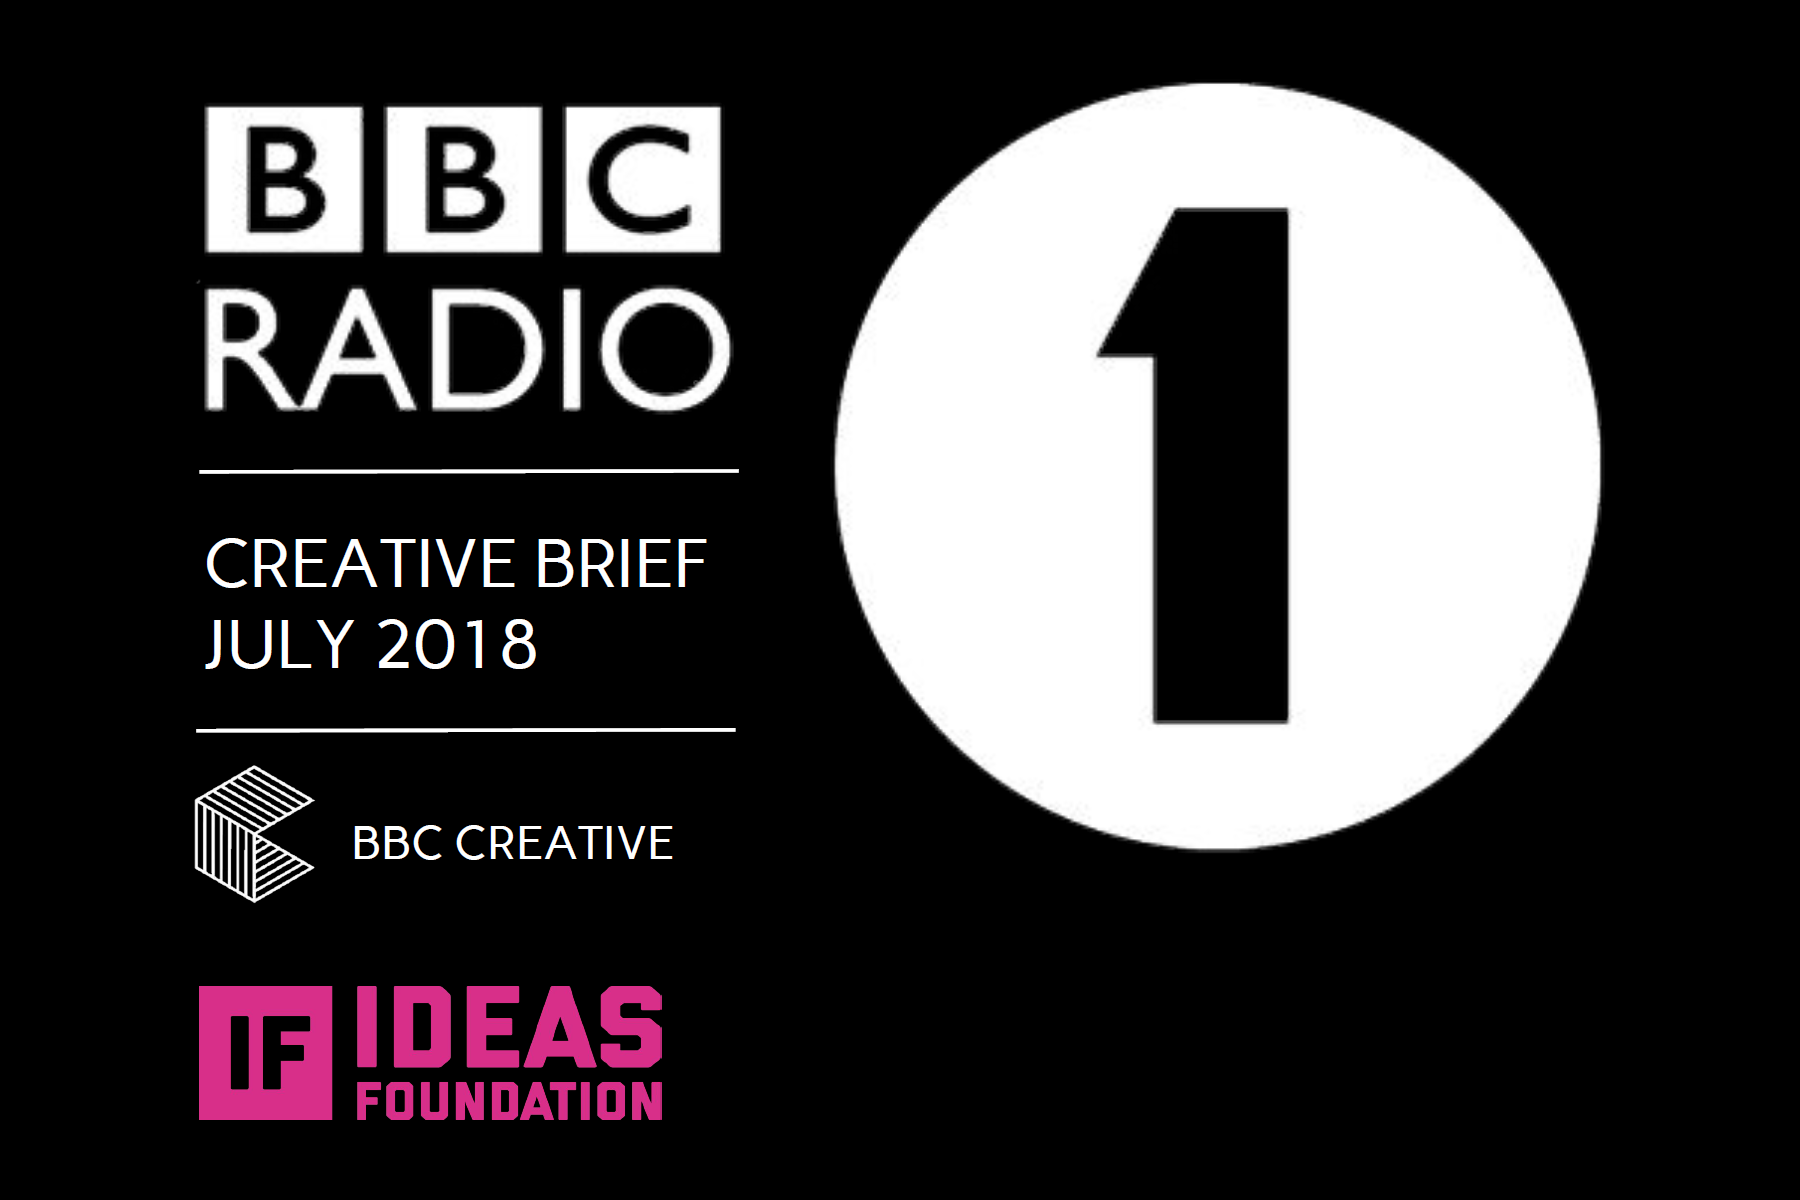 BBC Radio 1 - Creative Brief (July 2018) Ideas Foundation (graphic)